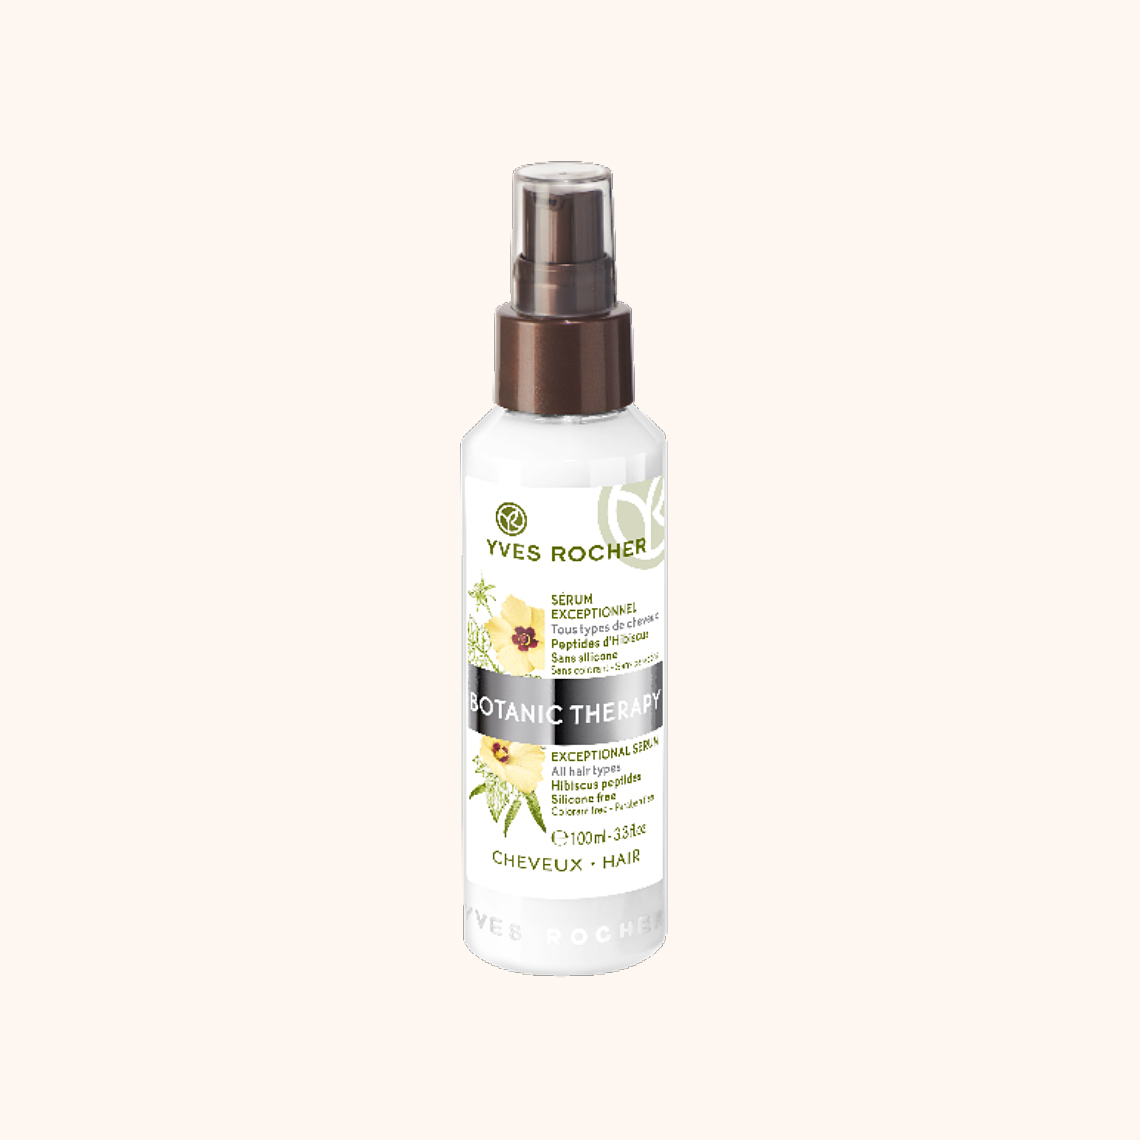 Botanic Therapy Hair Exceptional Serum